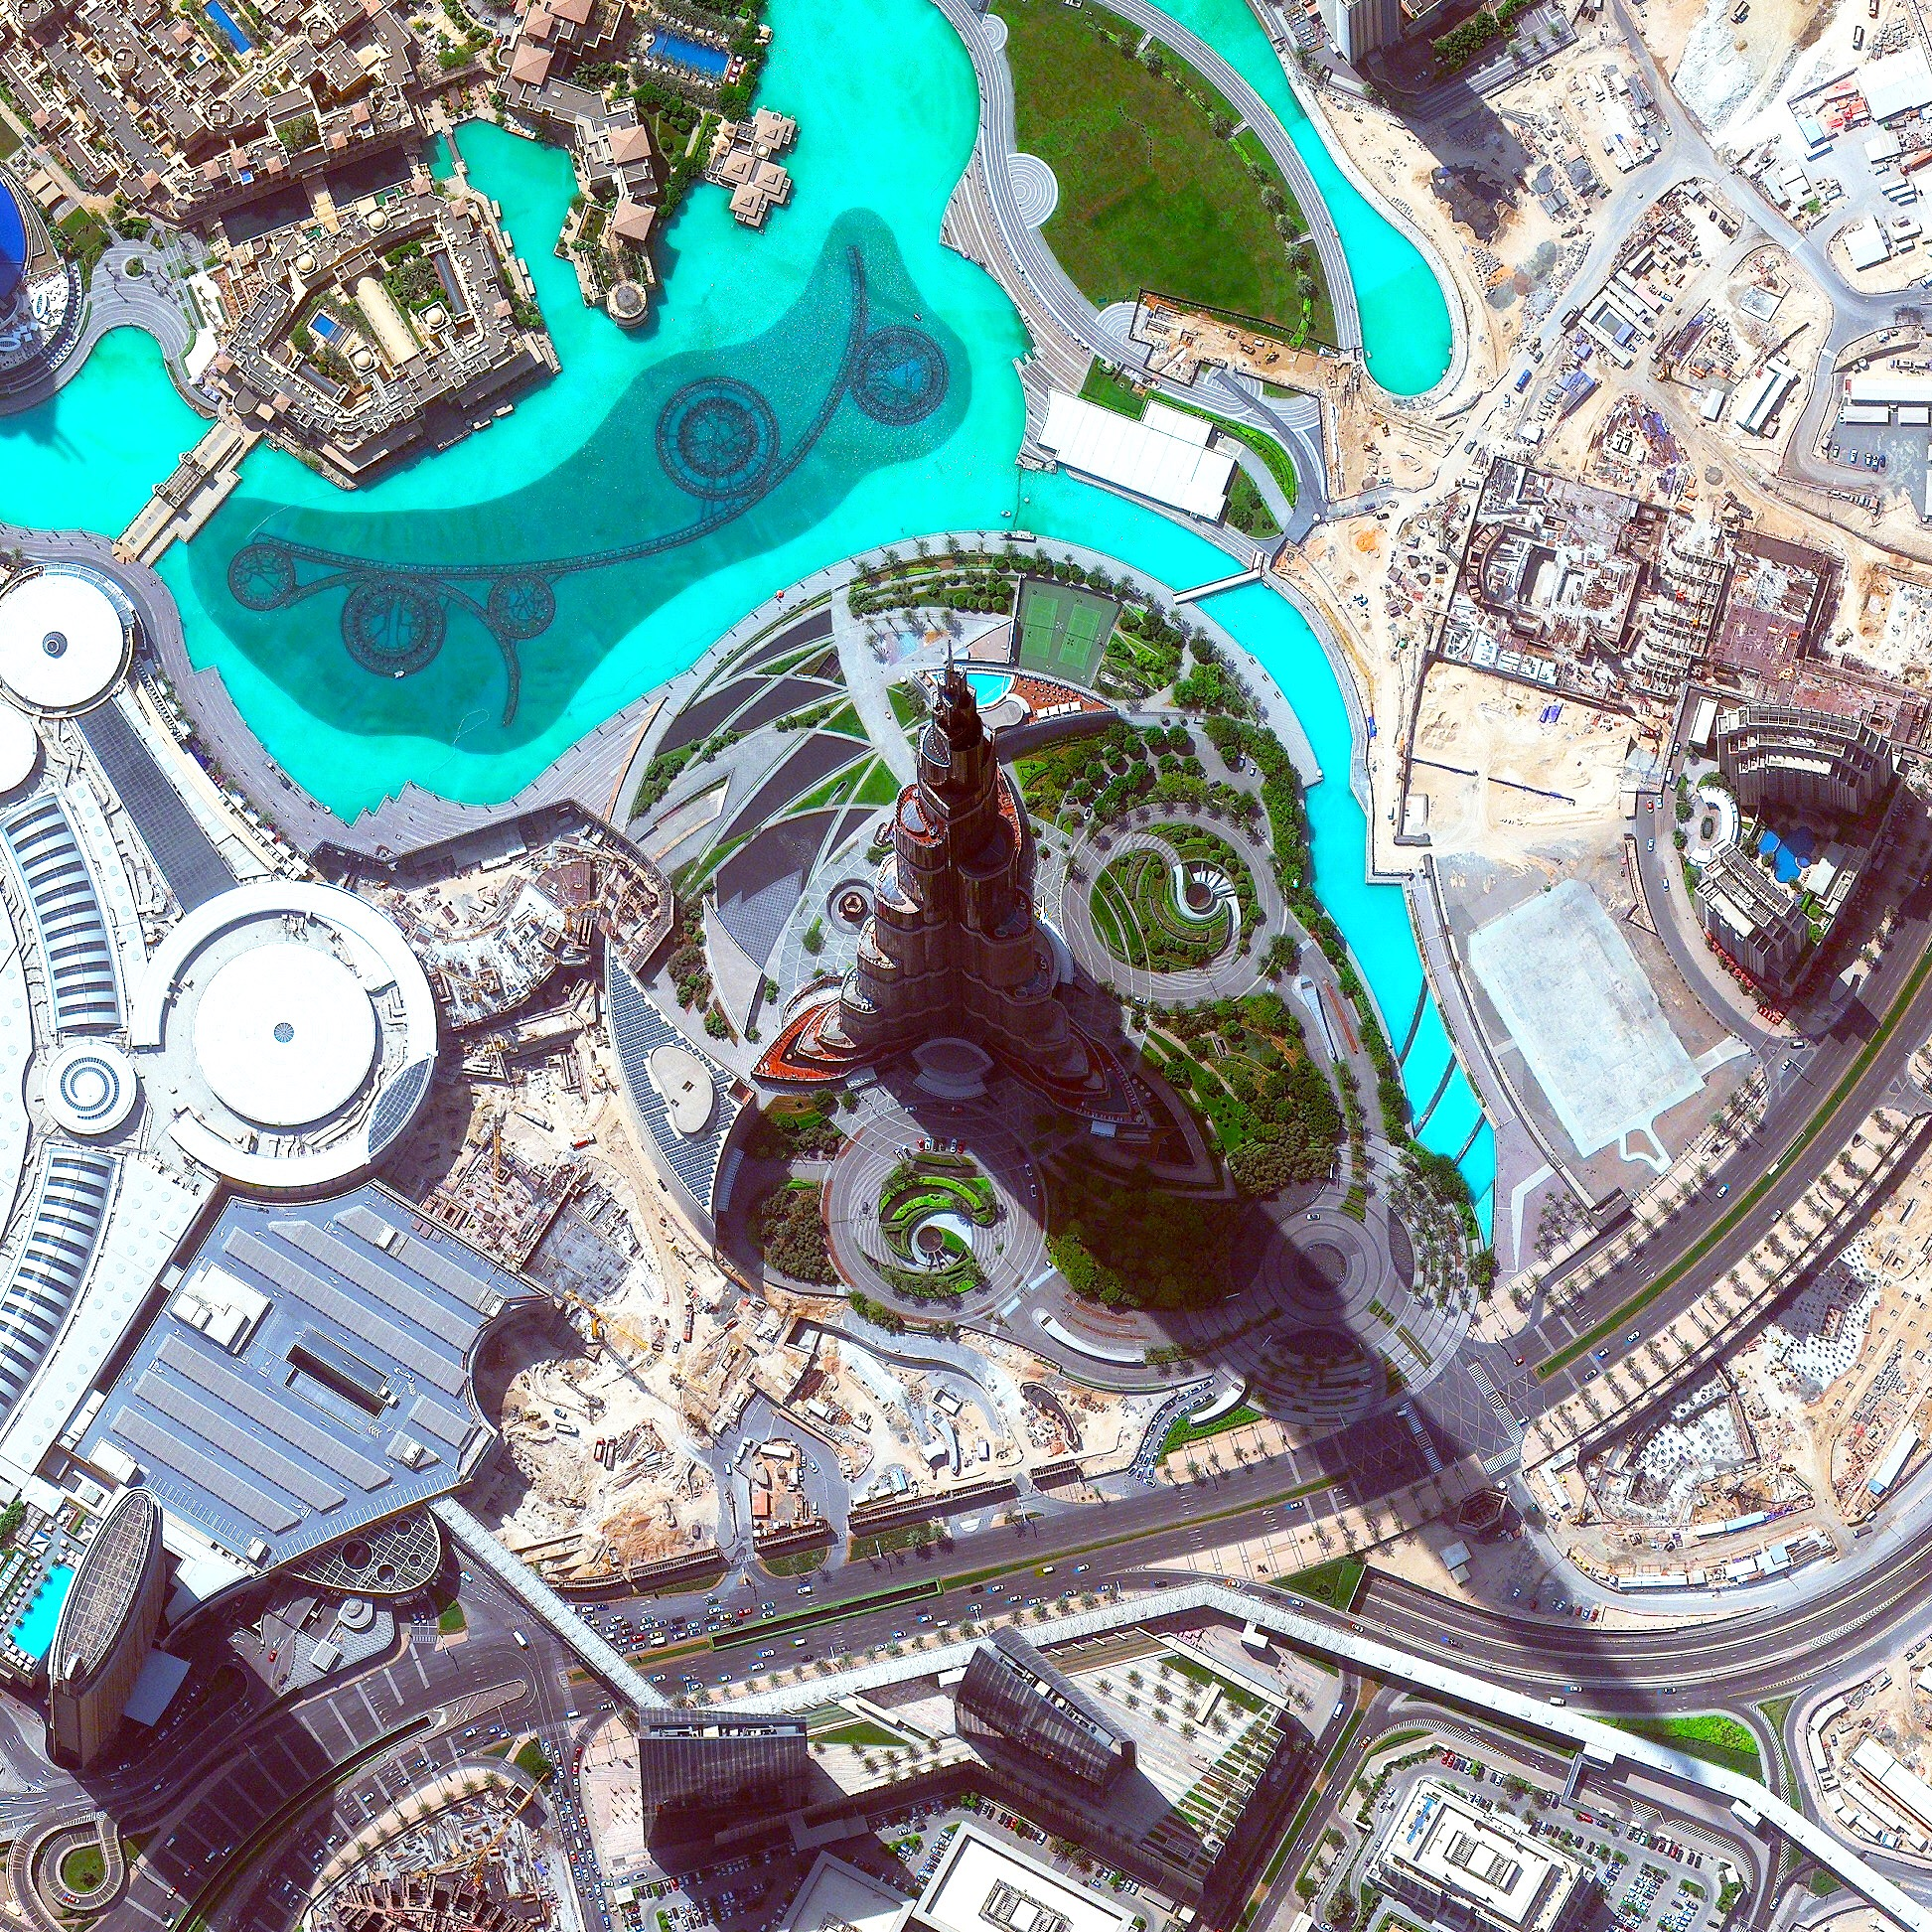 3/7/2017   Burj Khalifa   Dubai, United Arab Emirates  25°11′49.7″N 55°16′26.8″E    Standing at 2,717 feet (828m), the Burj Khalifa in Dubai, UAE is the tallest building in the world (and casts quite a long shadow!). The design of the 163-floor structure is an abstraction of the Hymenocallis, a type of desert flower that has long petals extending from its center. The building has been very well received since it opened in 2010; however, its construction was very controversial as it was built primarily by workers from South Asia and East Asia who earned low wages and were housed in abysmal conditions.